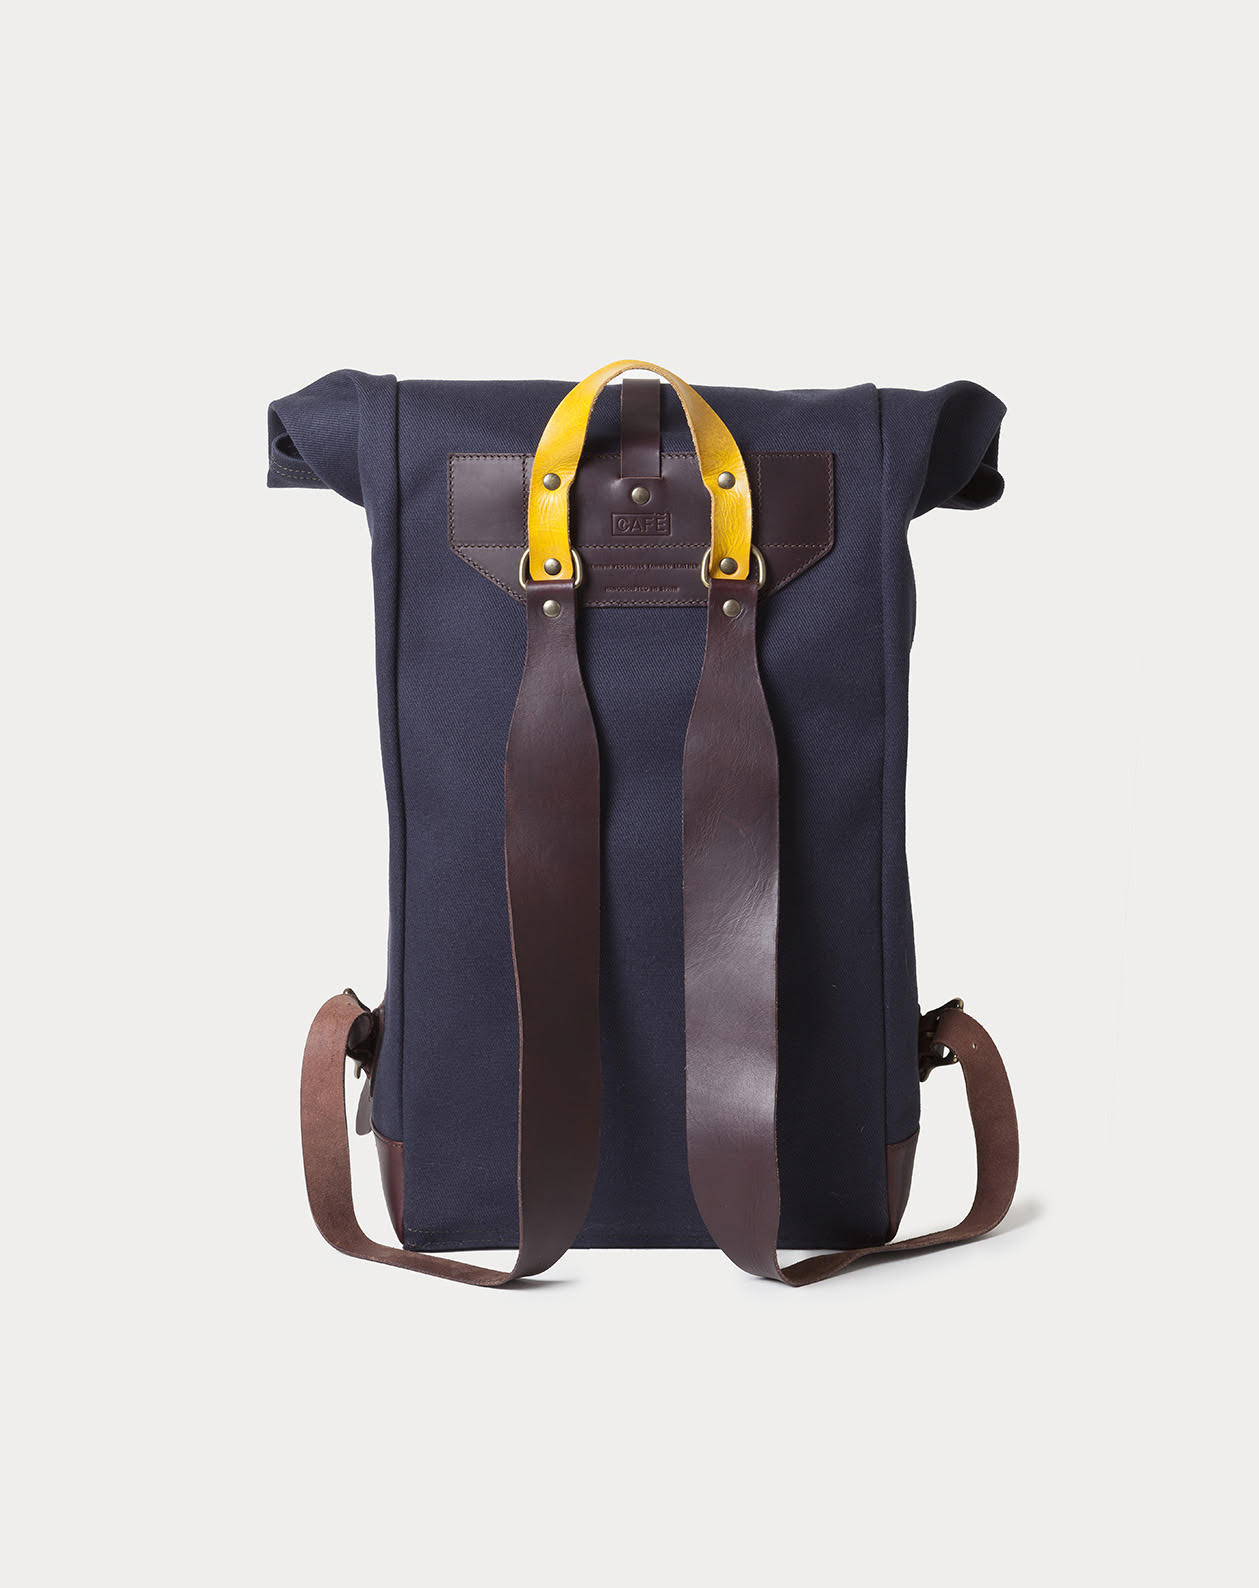 rucksack manufactured in Spain using 18Oz Twill British Millerain canvas and leather